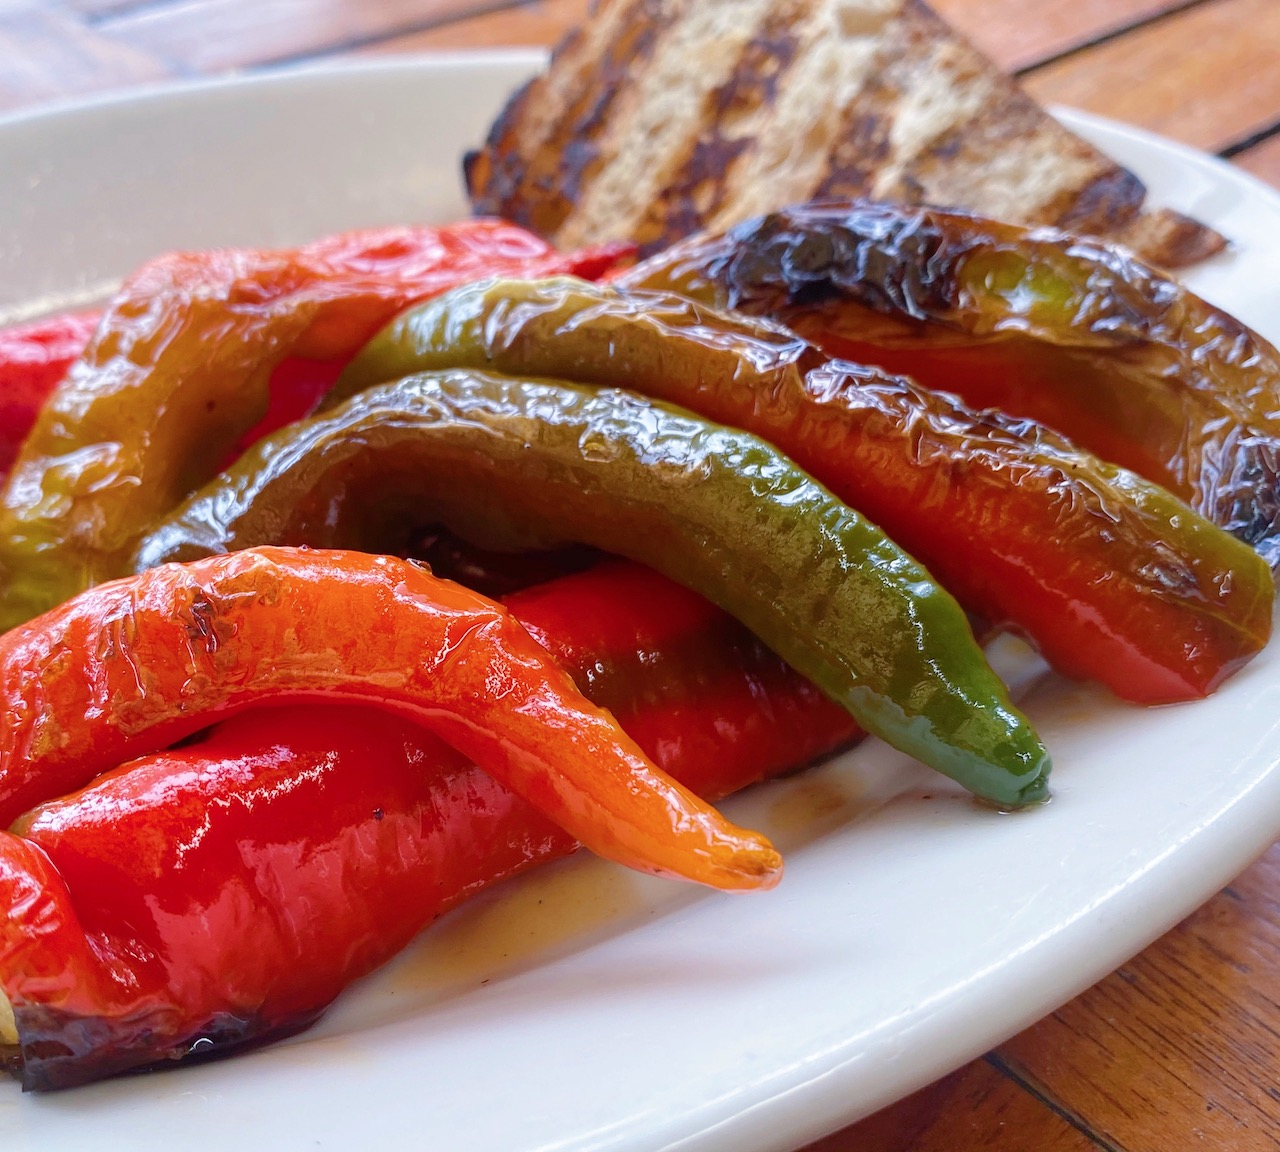 A plate of fried Jimmy Nardello peppers.